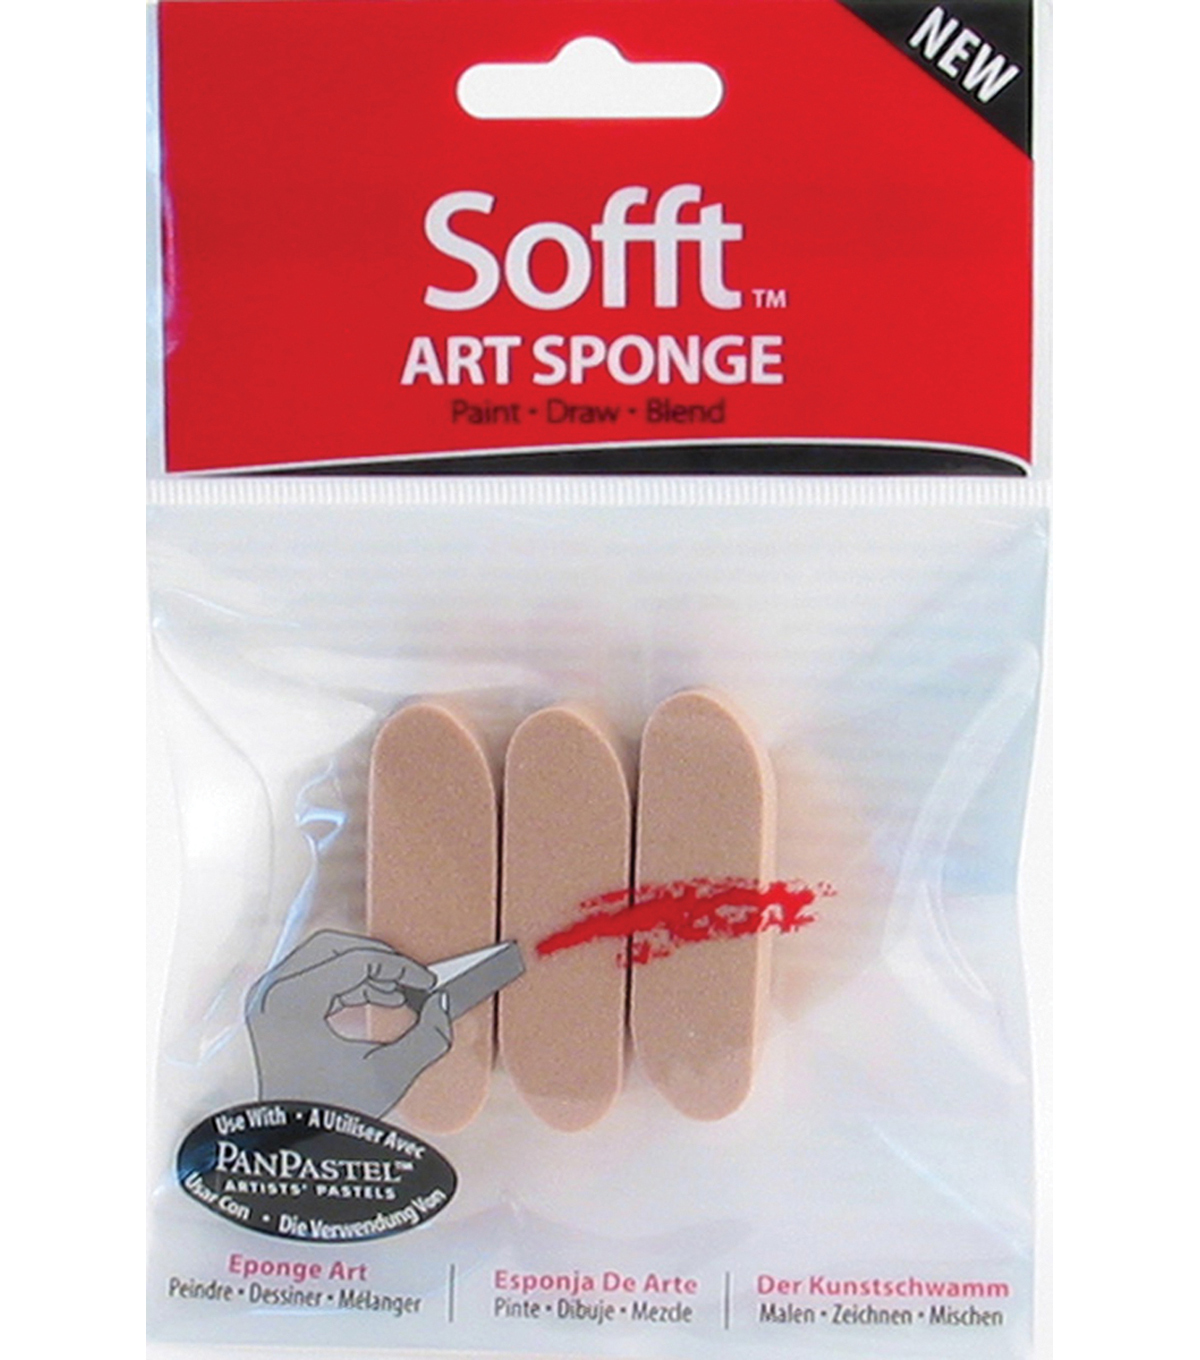 Colorfin Sofft Sponge Bars-3PK/Round